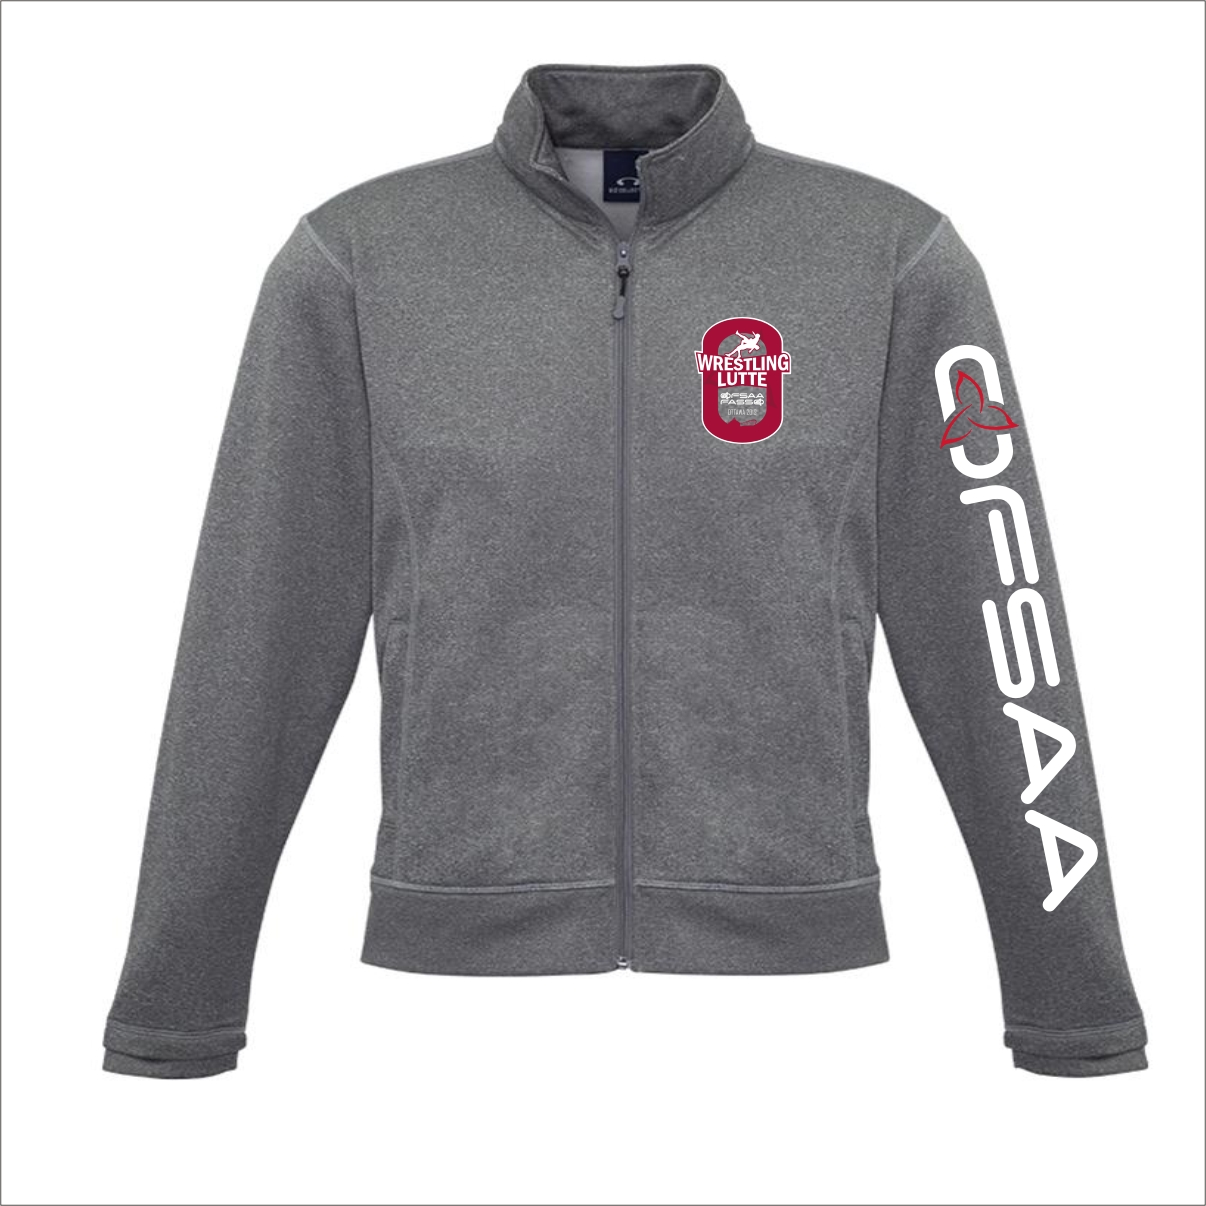 2019 Wrestling jacket women single.jpg